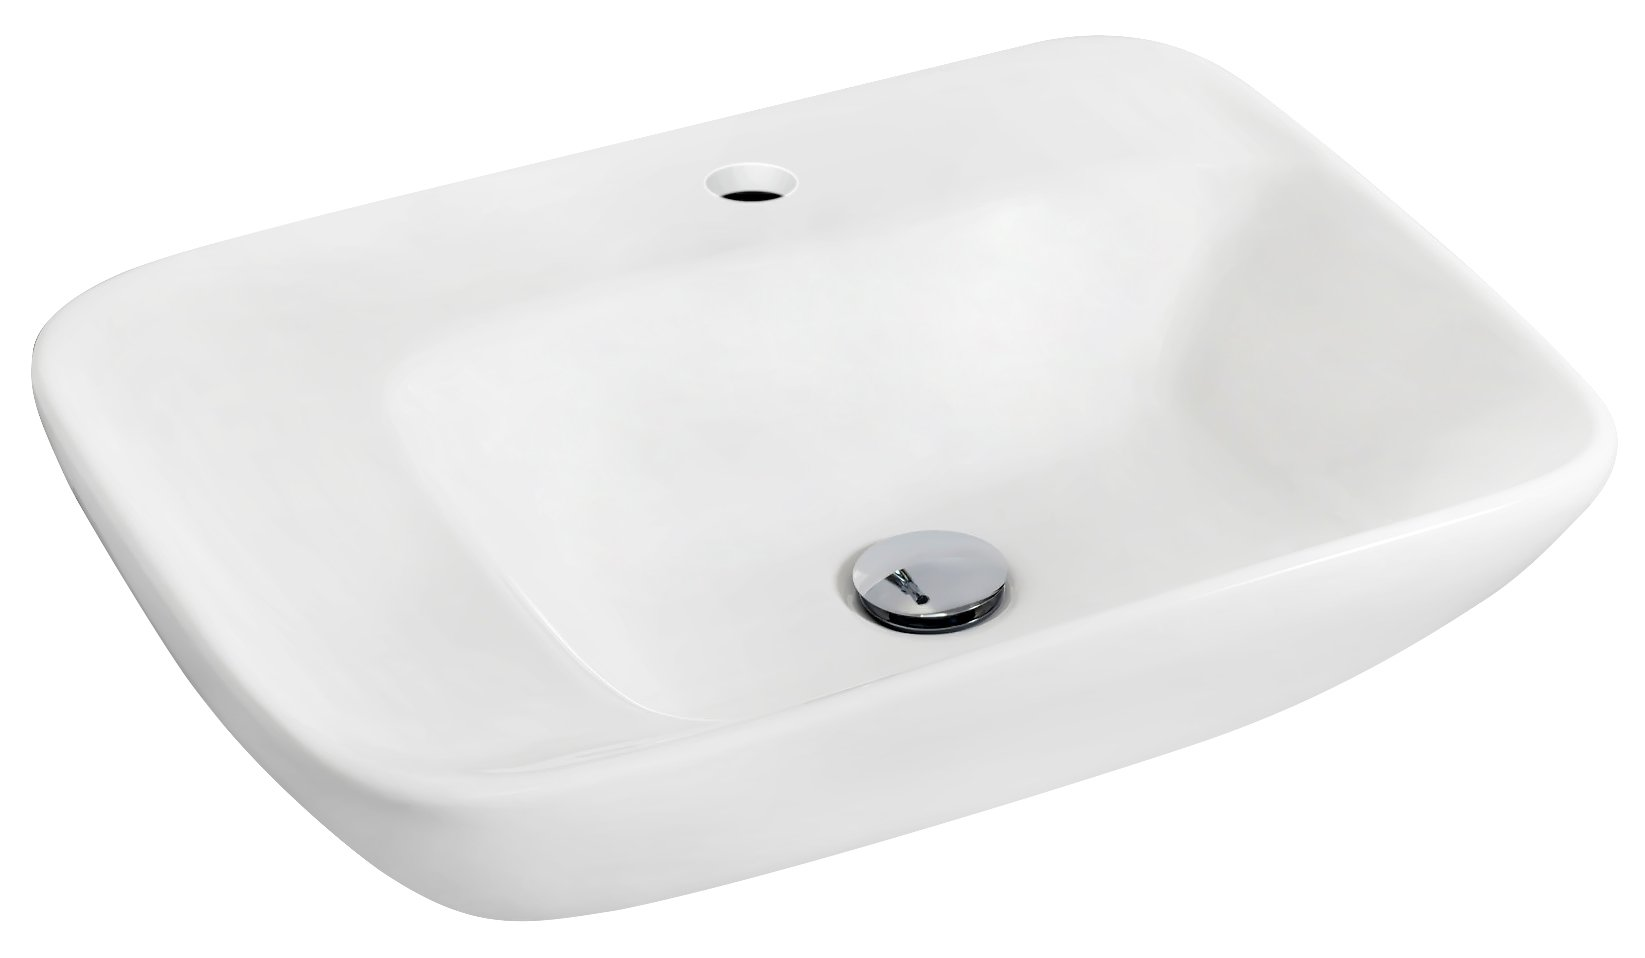 American Imaginations Rectangle Shape Vessel, Comes with an Enamel Glaze Finish in White Color and Designed for a Single Hole Faucet